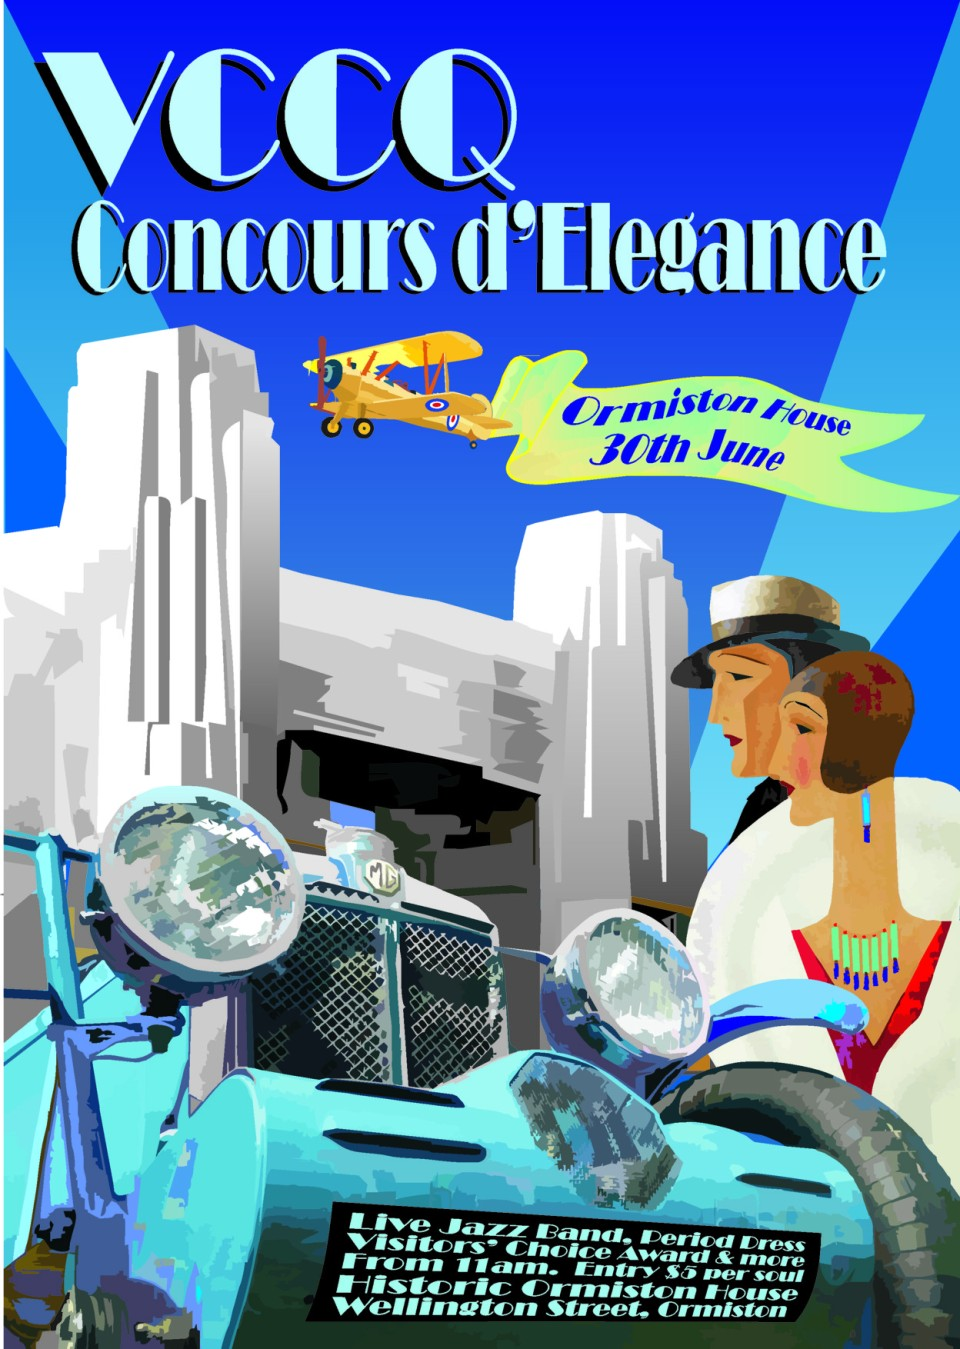 VCCQ Concours Poster.jpg